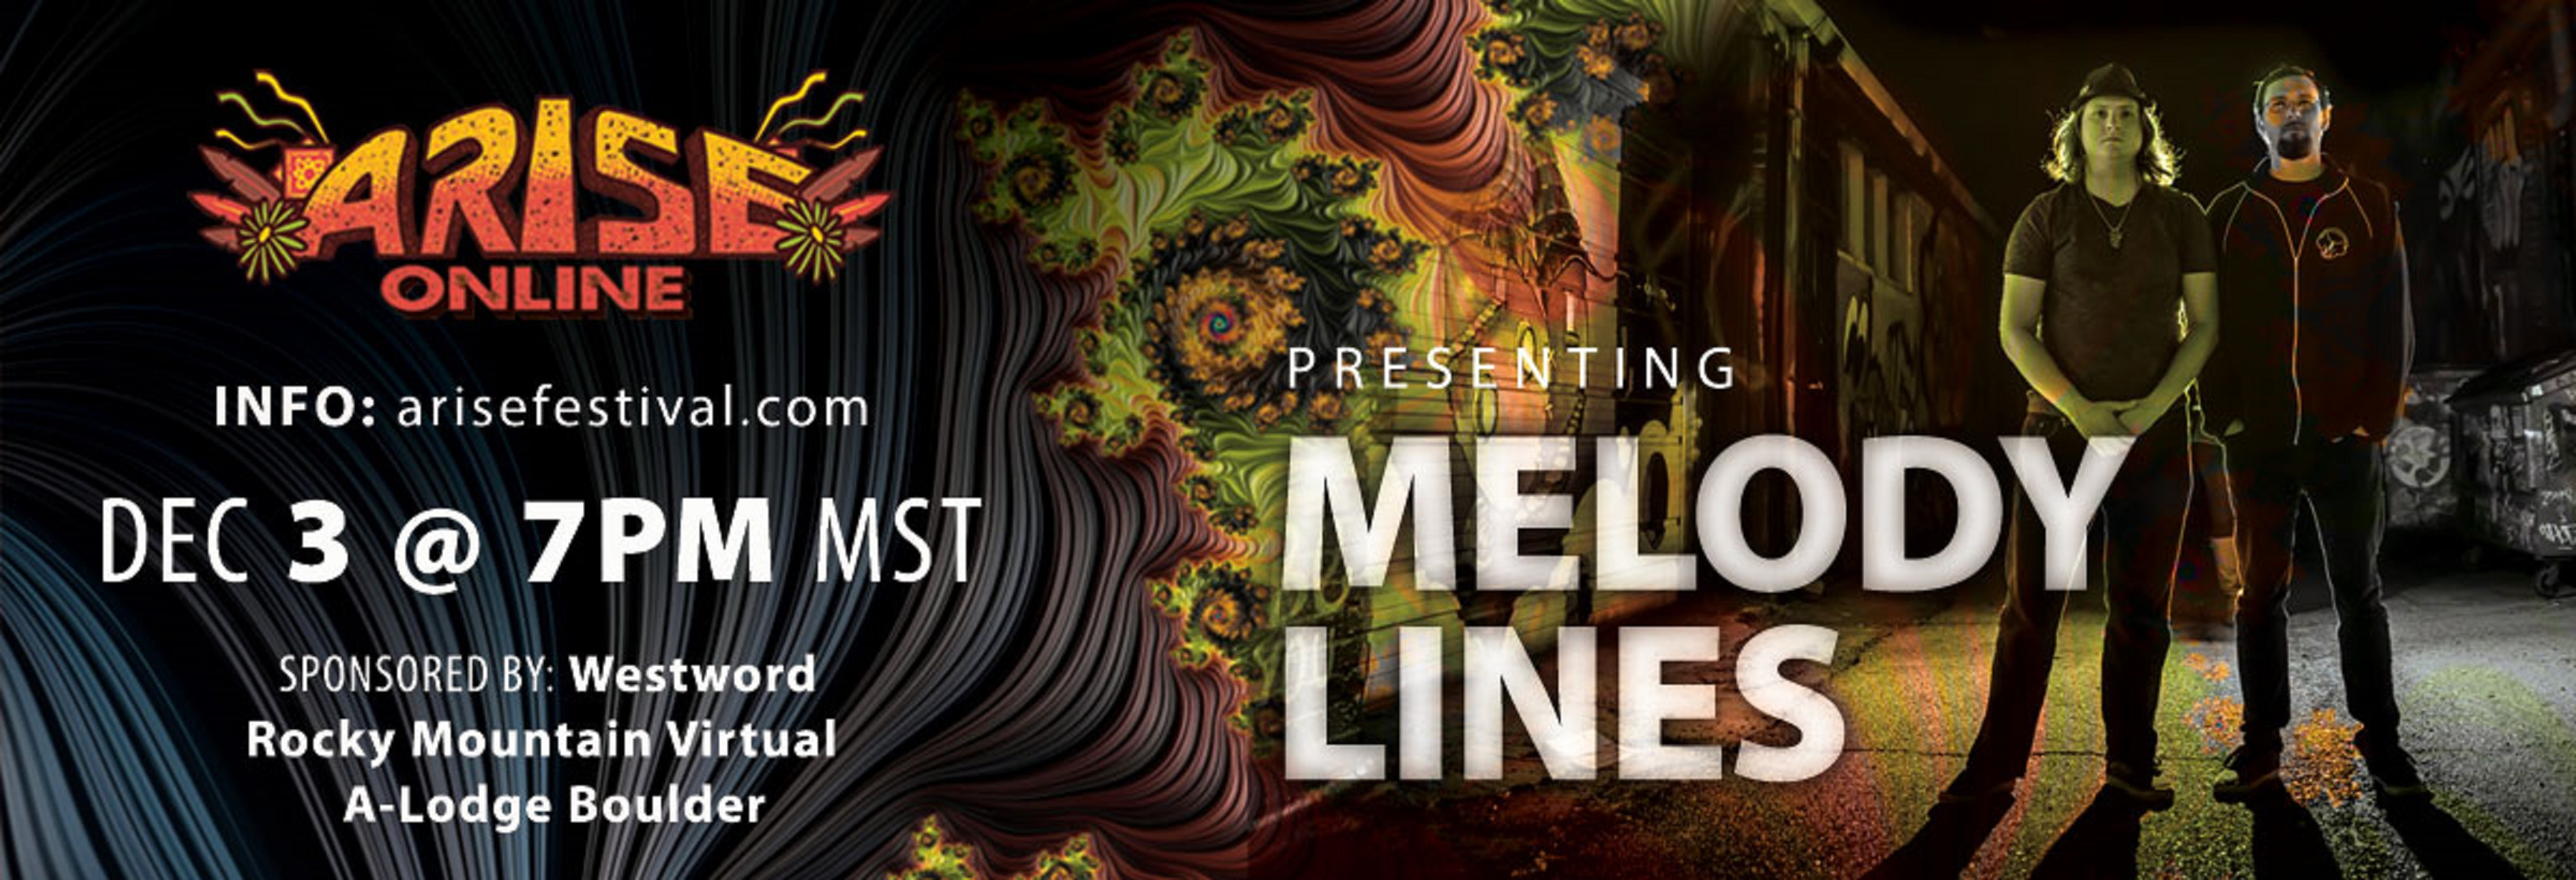 ARISE Online Continues Momentum with Melody Lines on December 3, 2020